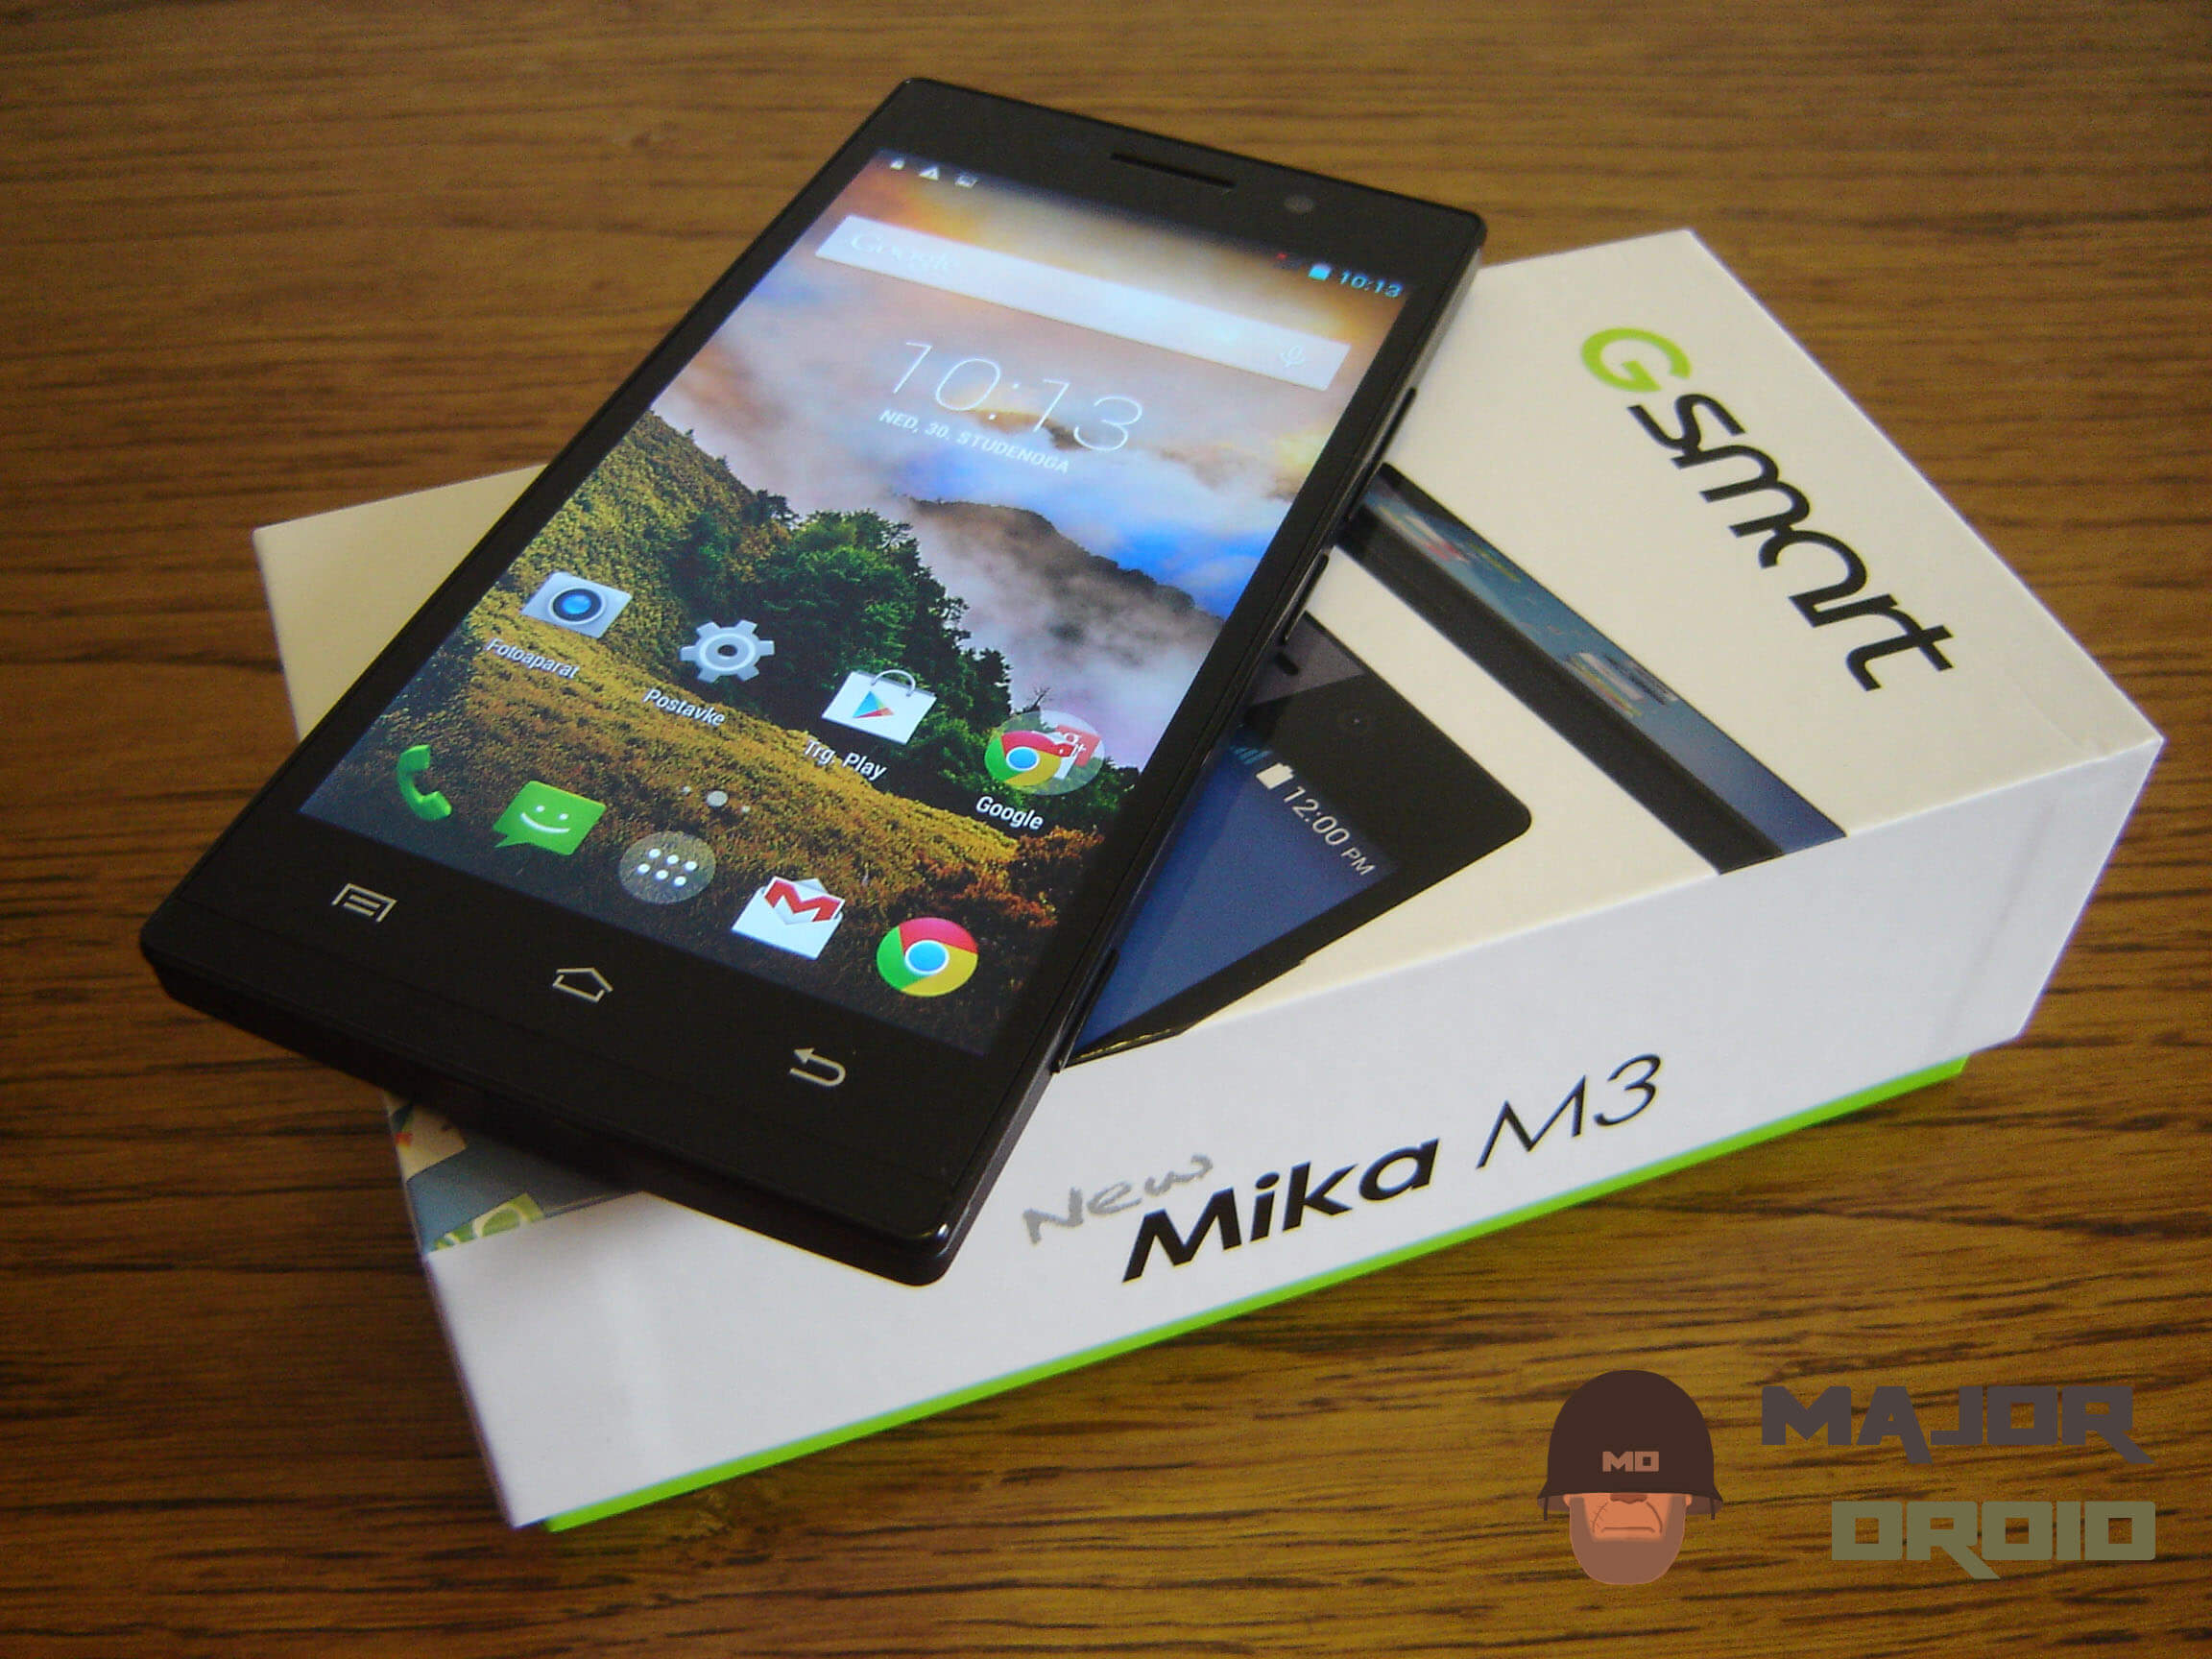 review for GSmart Mika M3